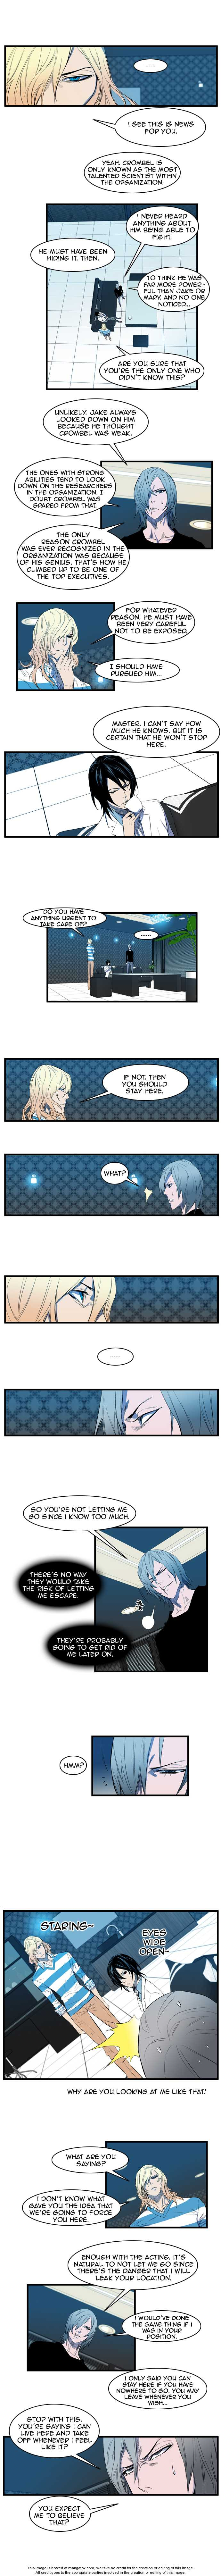 Noblesse 91 Page 2